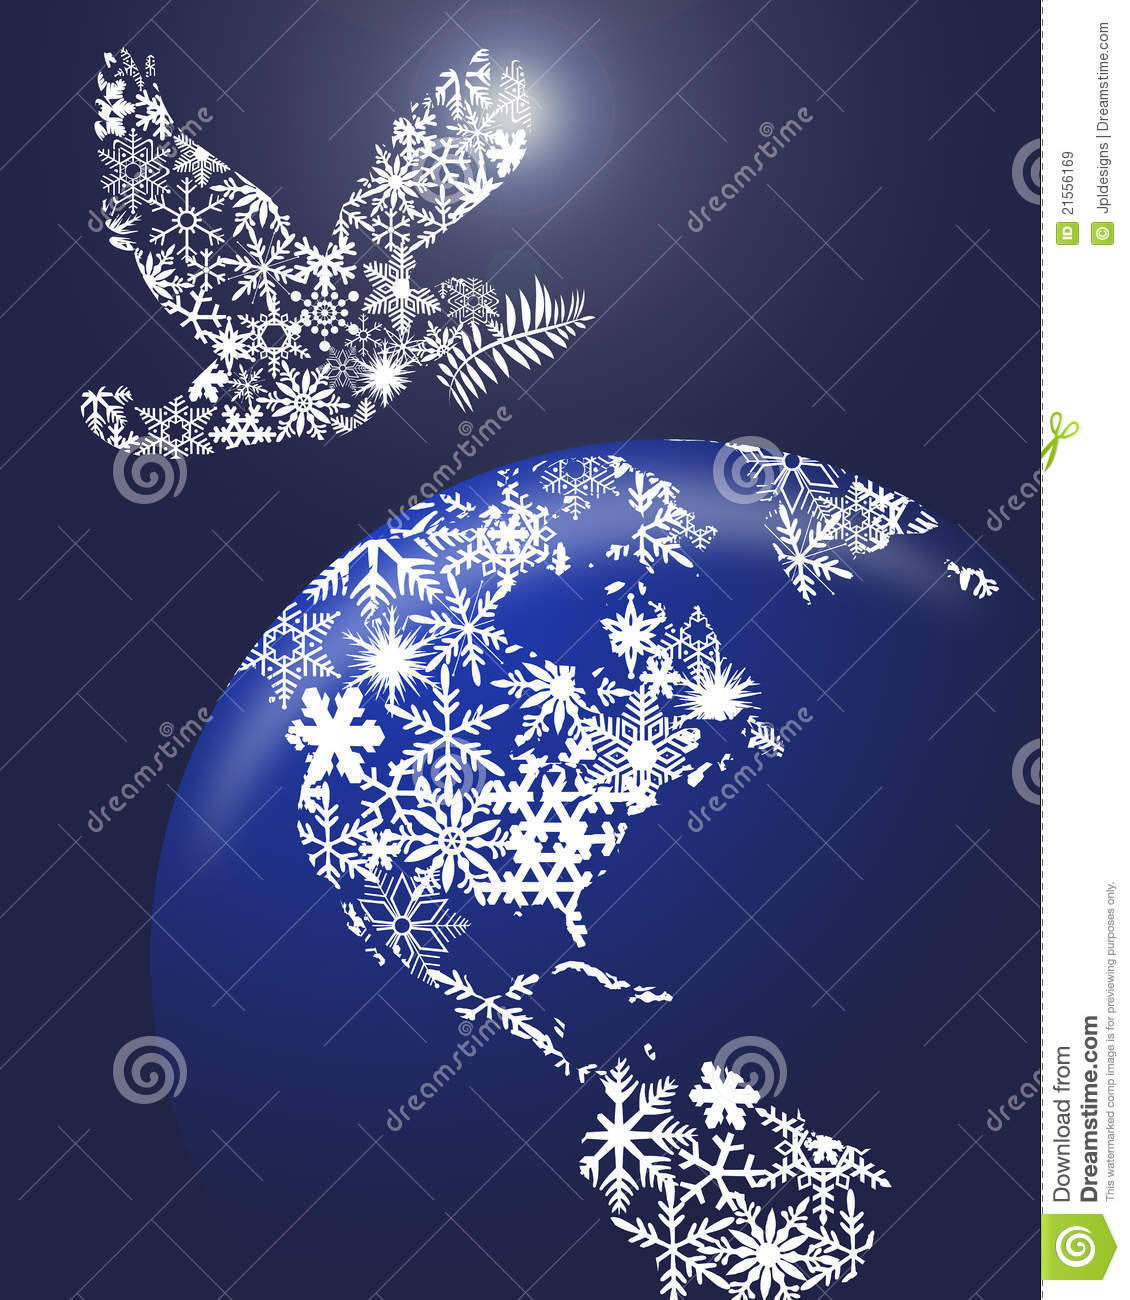 Christmas Peace Dove On Earth Royalty Free Stock Images   Image